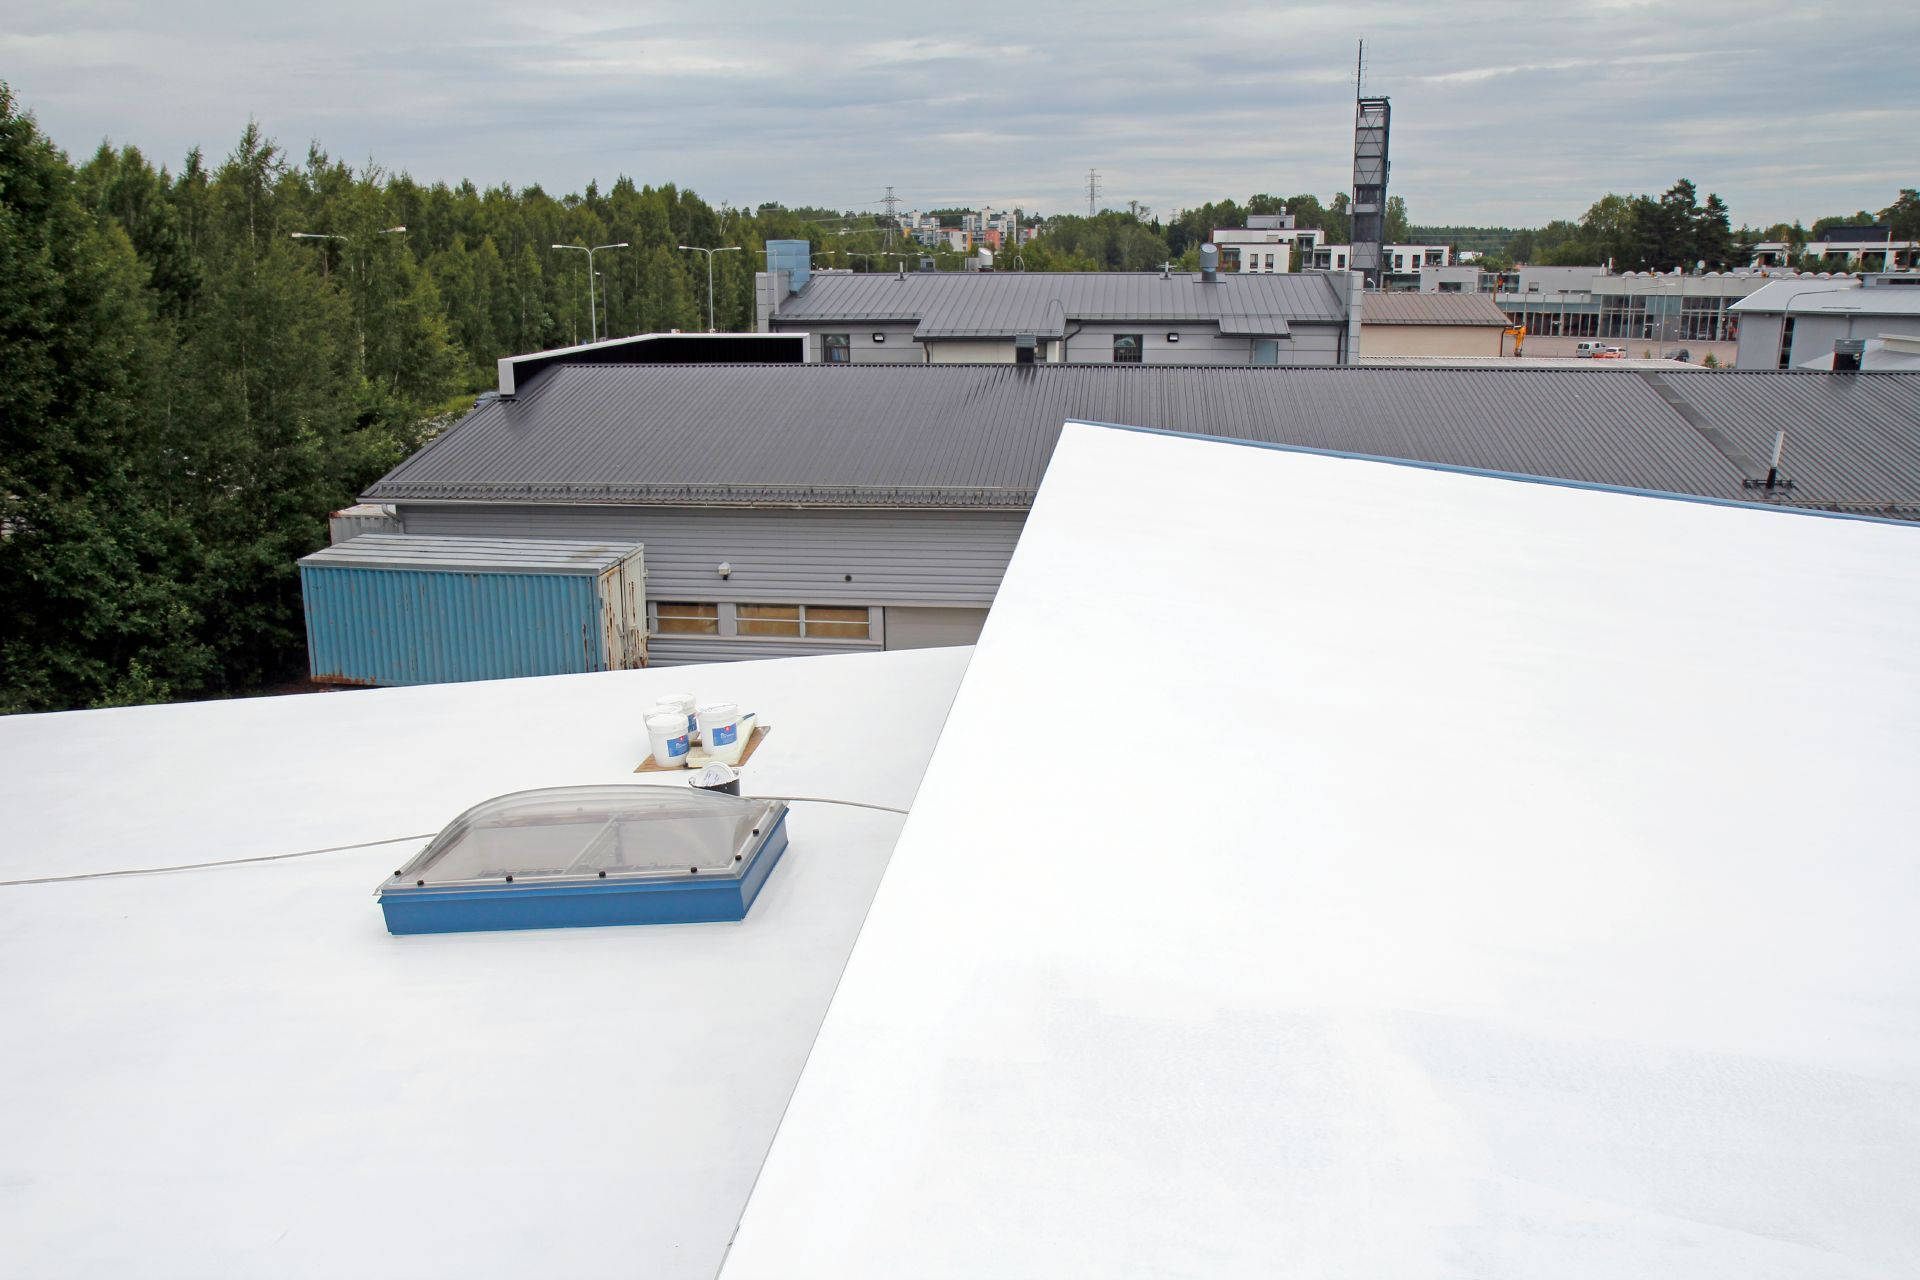 Lower energy consumption for cooling down buildings